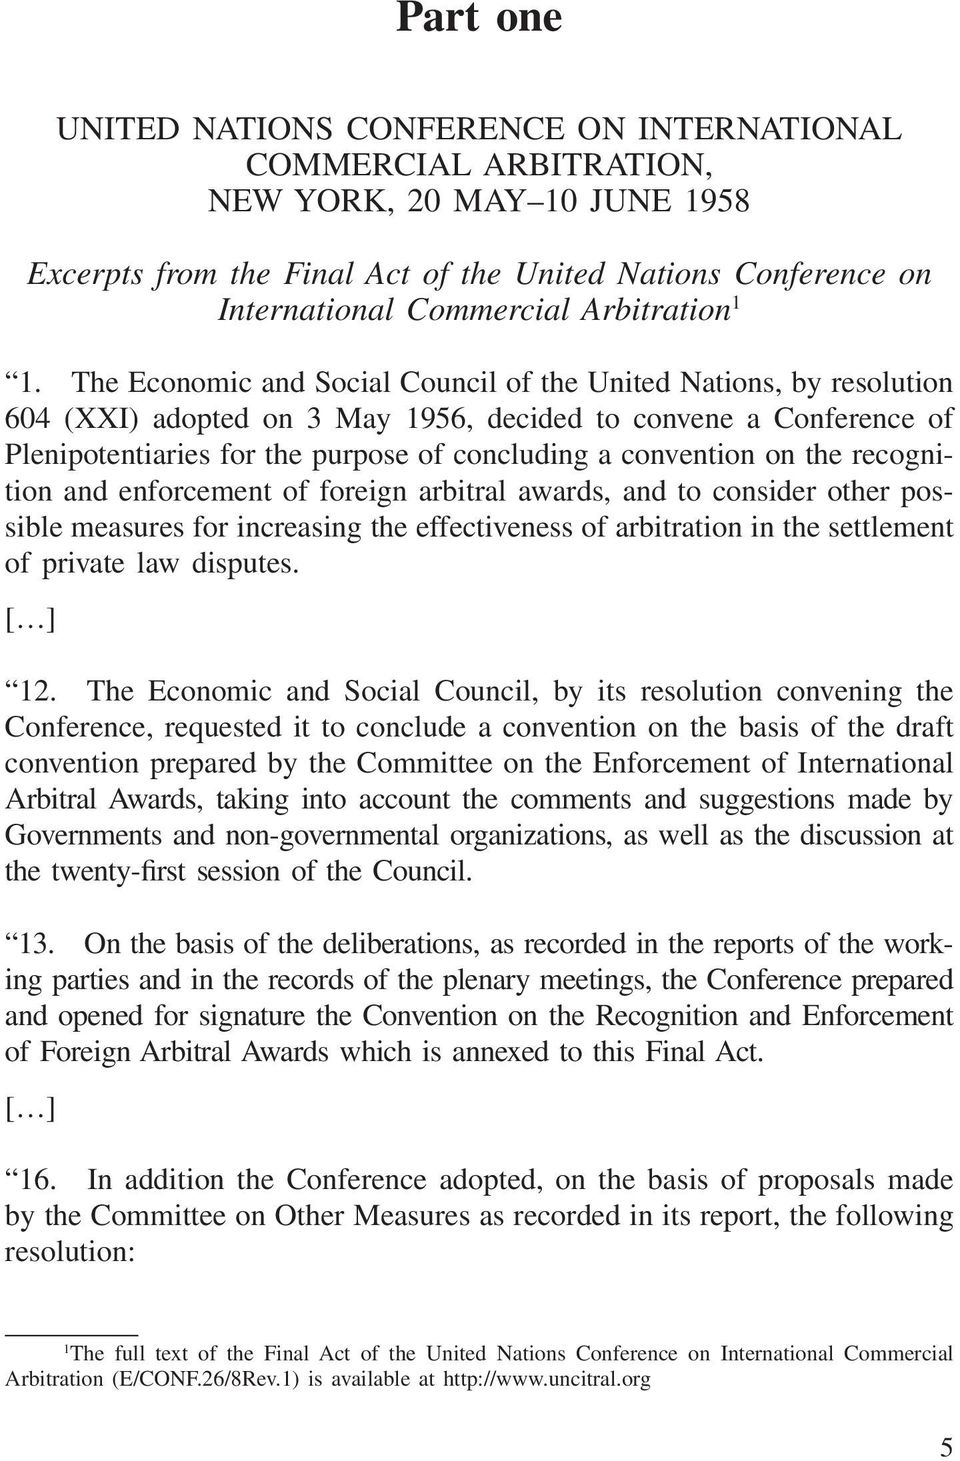 The Economic and Social Council of the United Nations, by resolution 604 (XXI) adopted on 3 May 1956, decided to convene a Conference of Plenipotentiaries for the purpose of concluding a convention